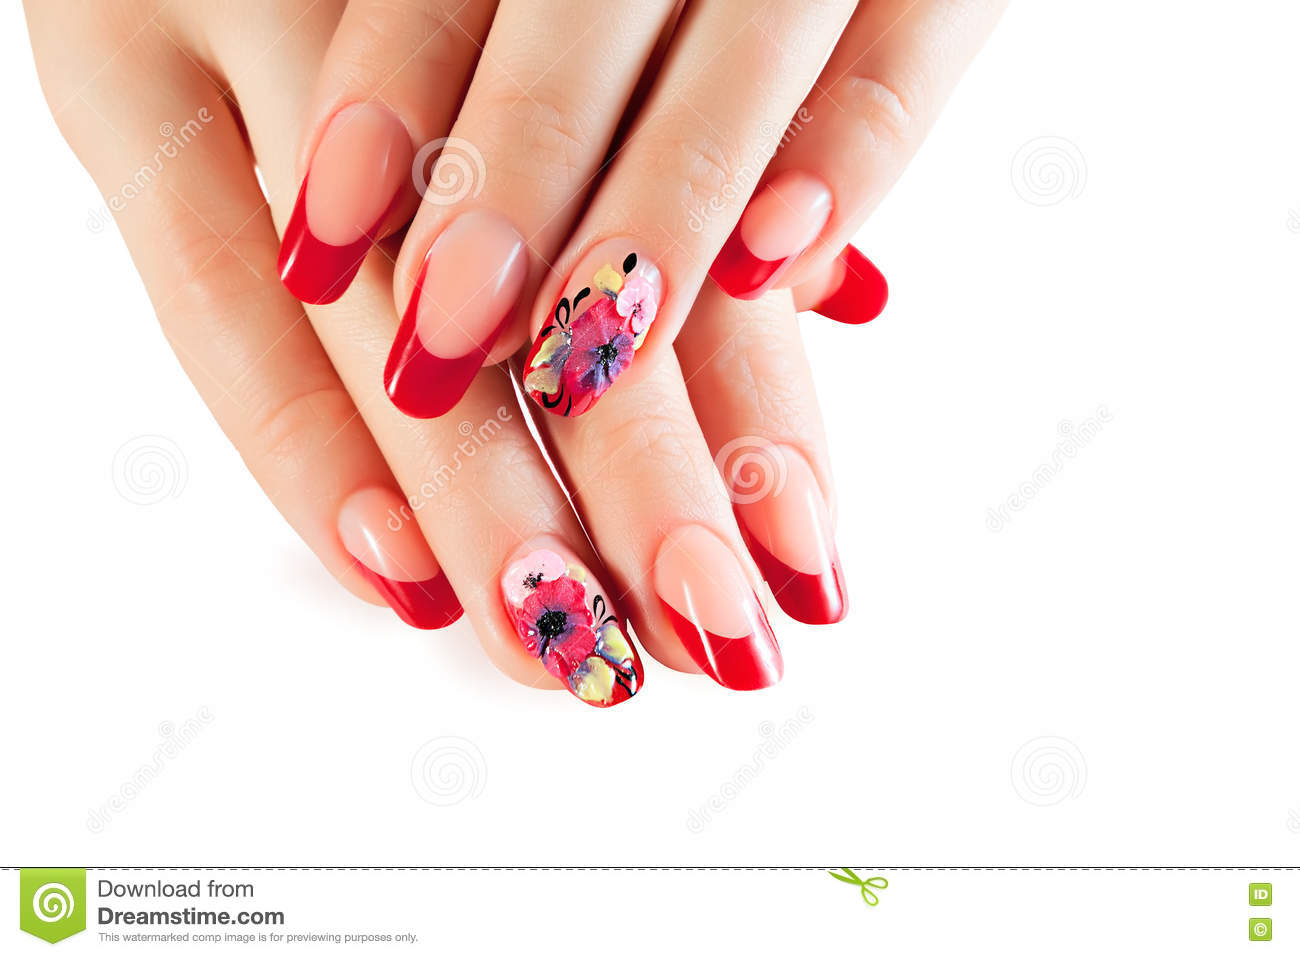 Female Hands With Red Nails And Flower Art Design Stock Photo